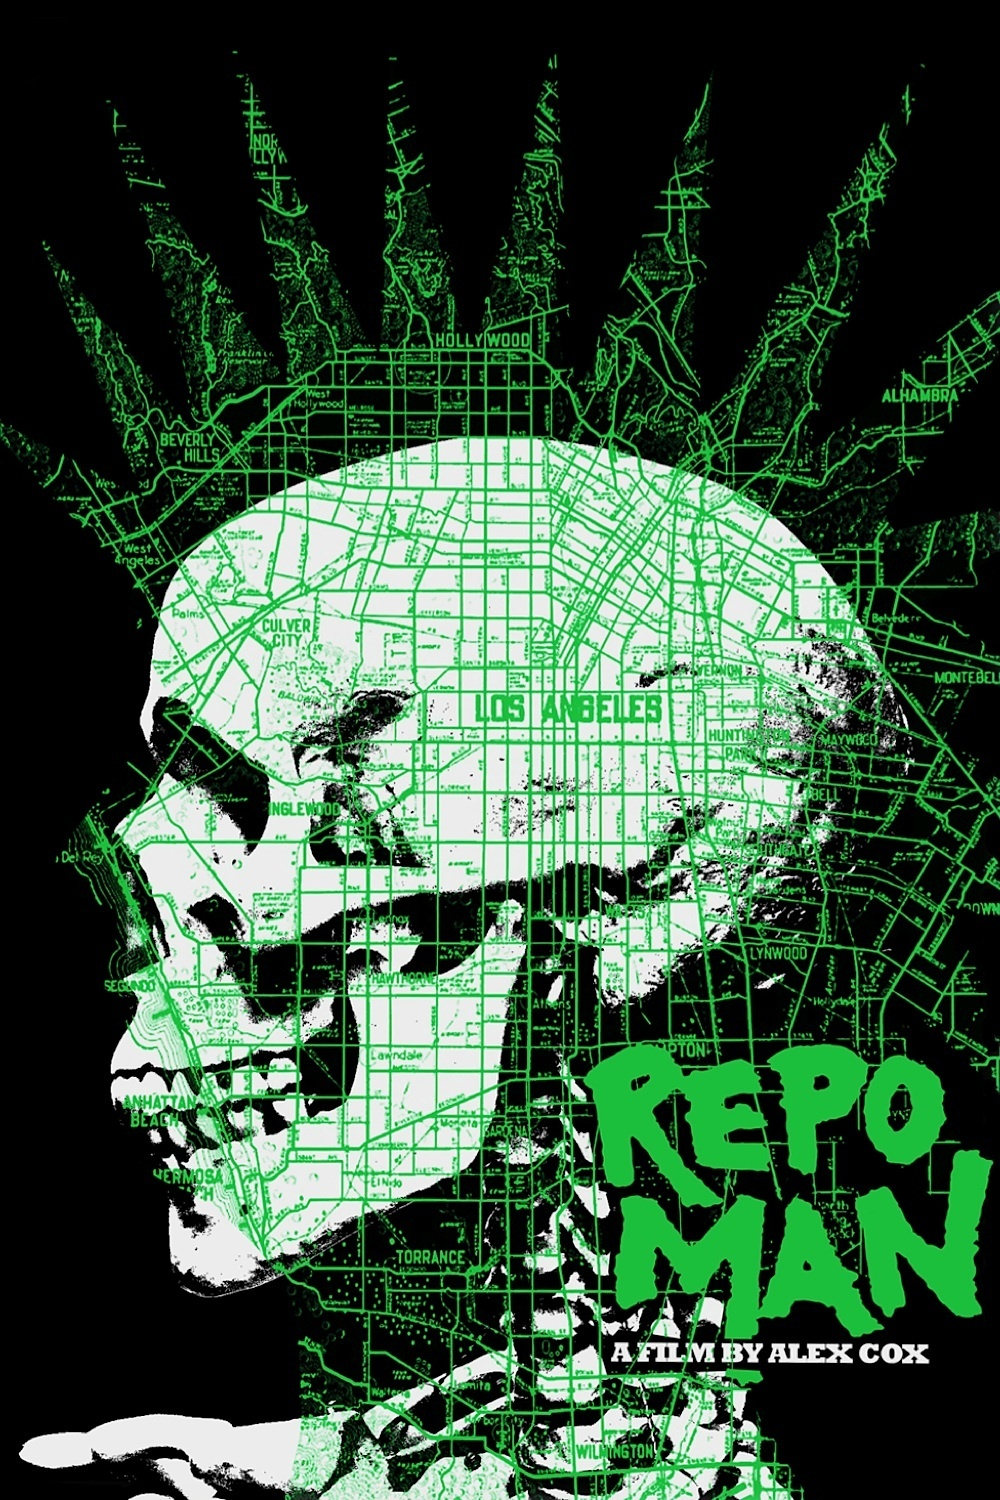 Repo Man by Jay Shaw